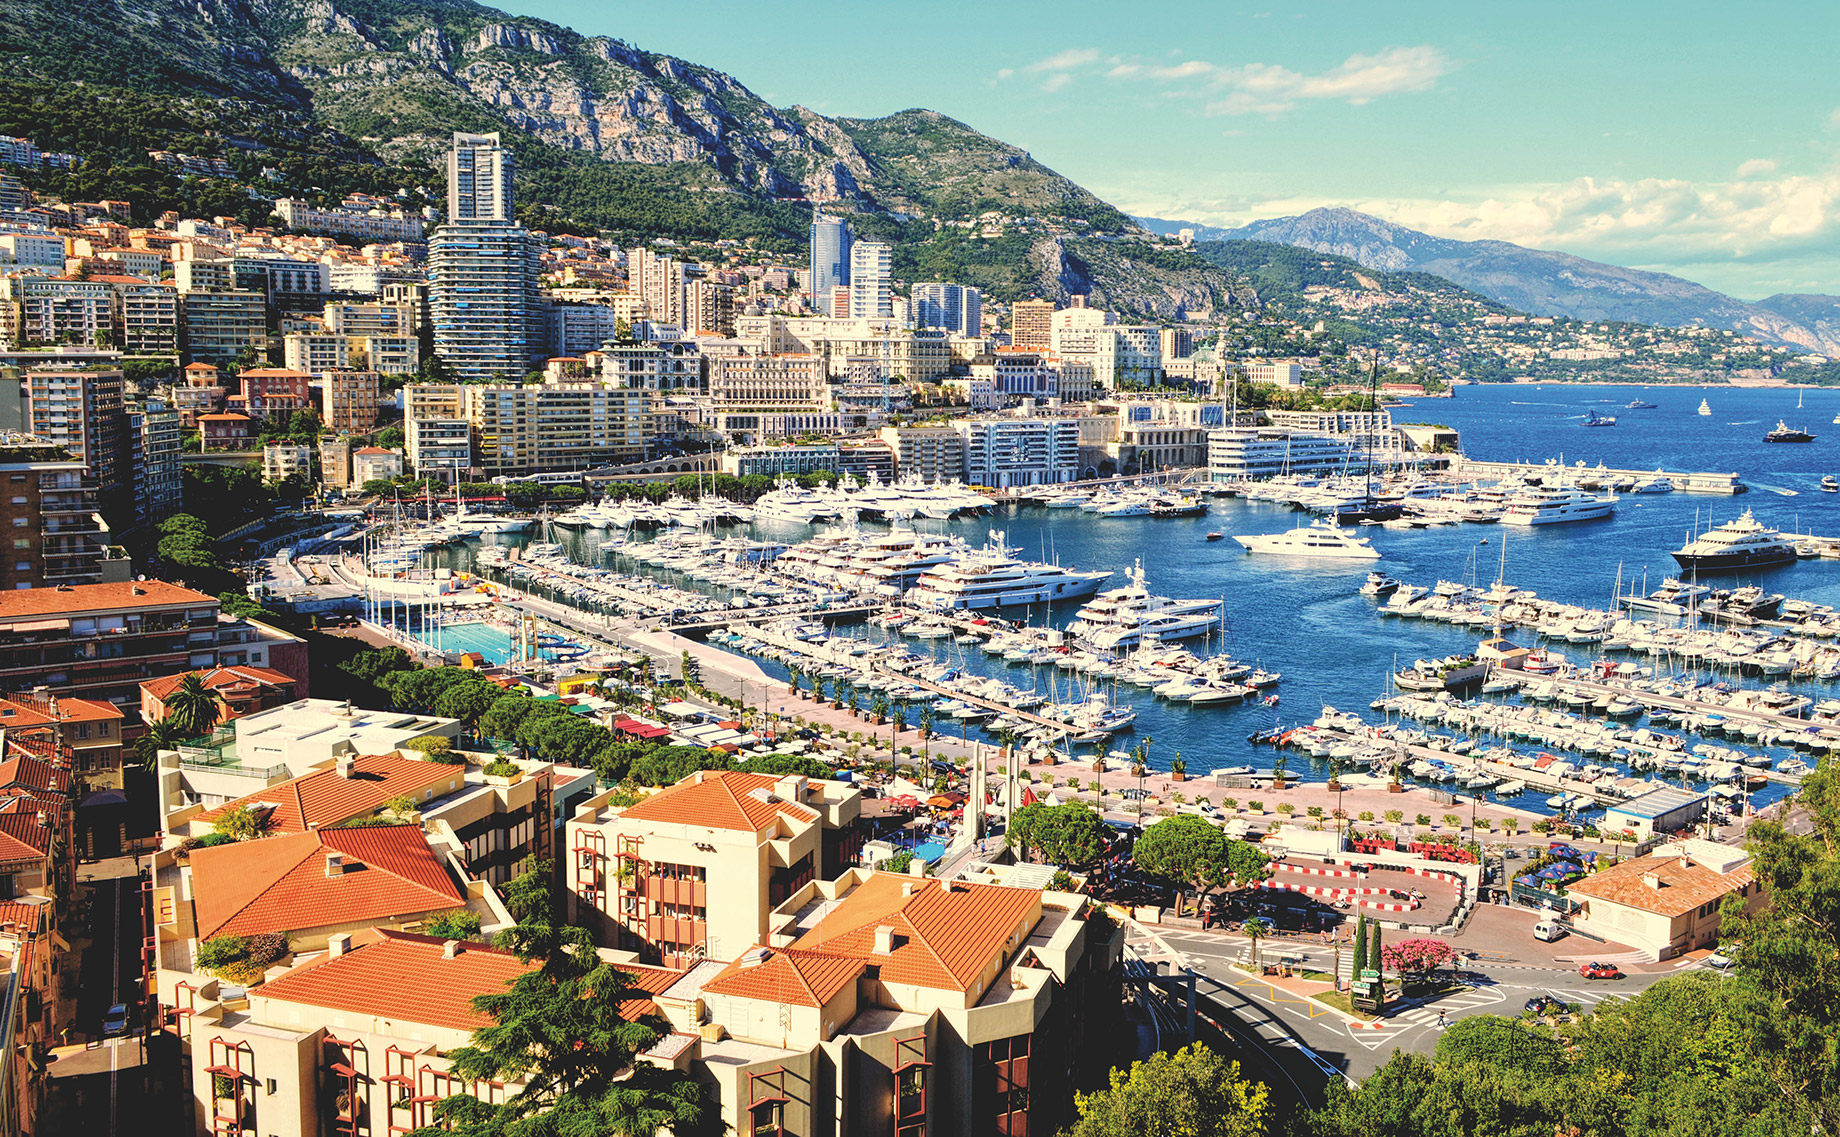 Monaco - The Most Expensive Real Estate Cities in the World